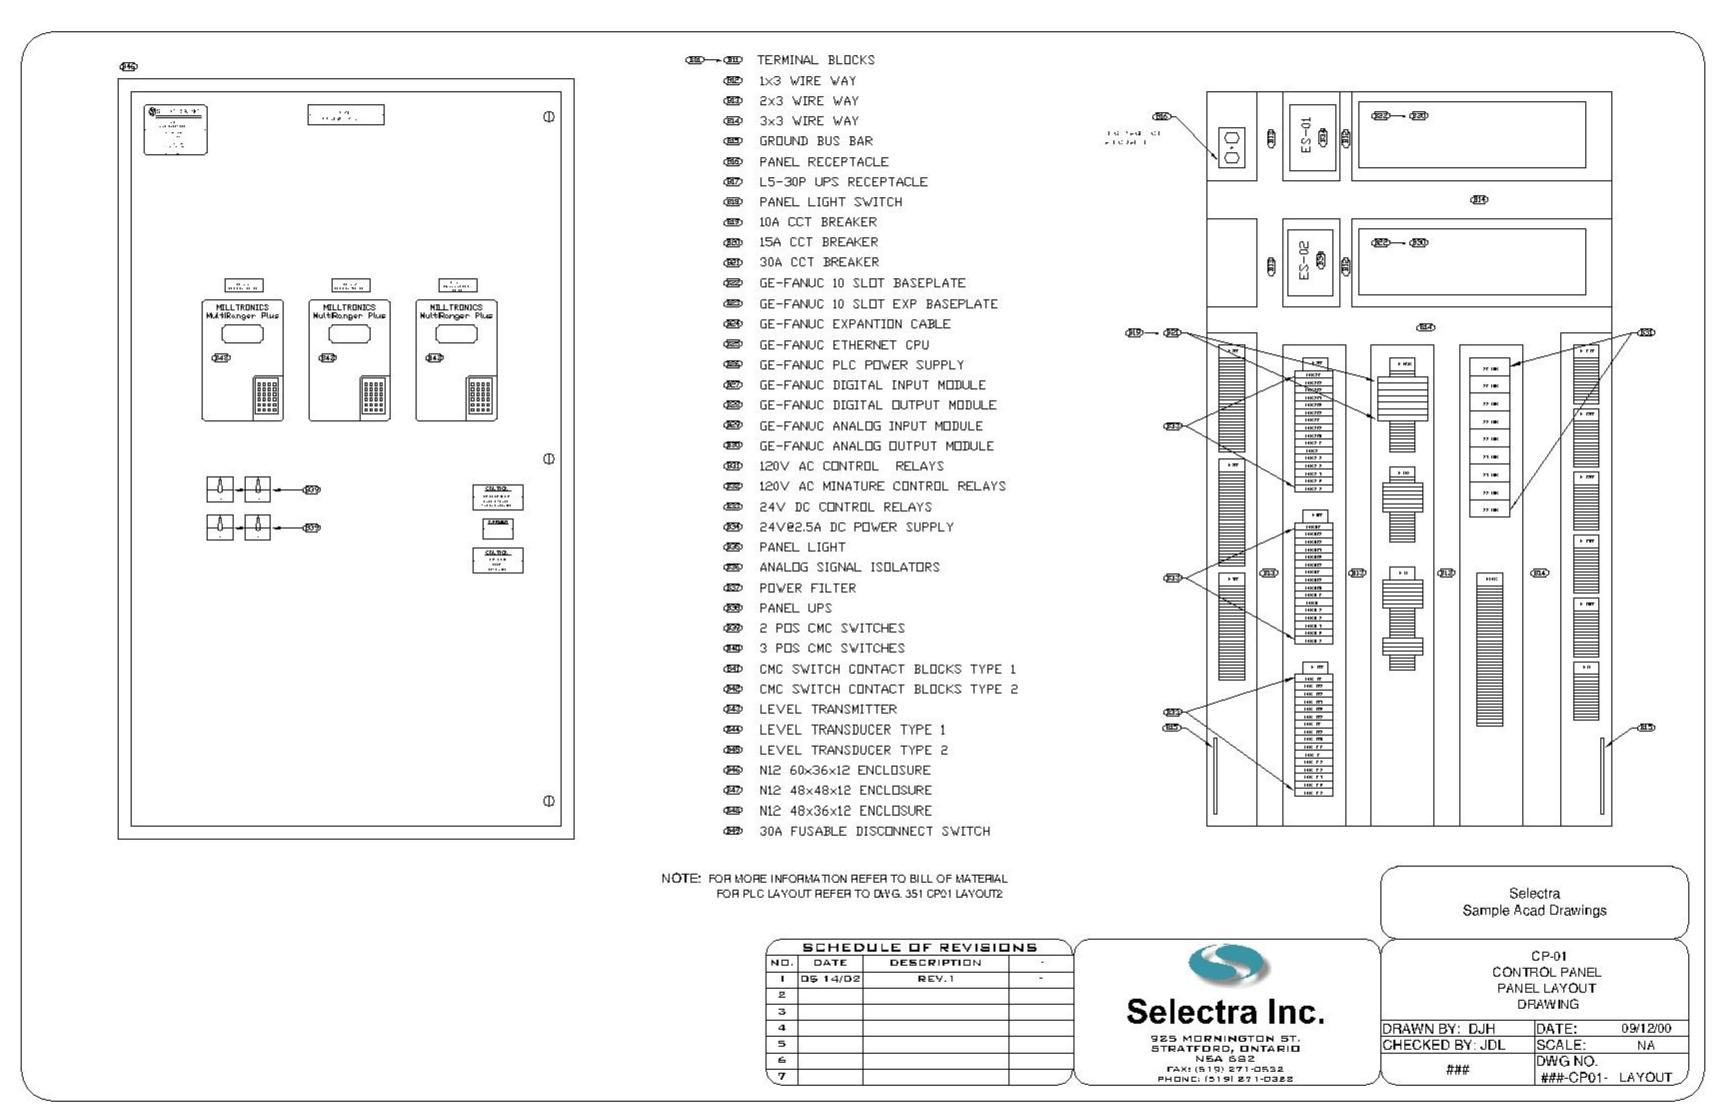 allen bradley slc 500 wiring diagram wirdig module wiring diagram ge a guide wiring diagram images